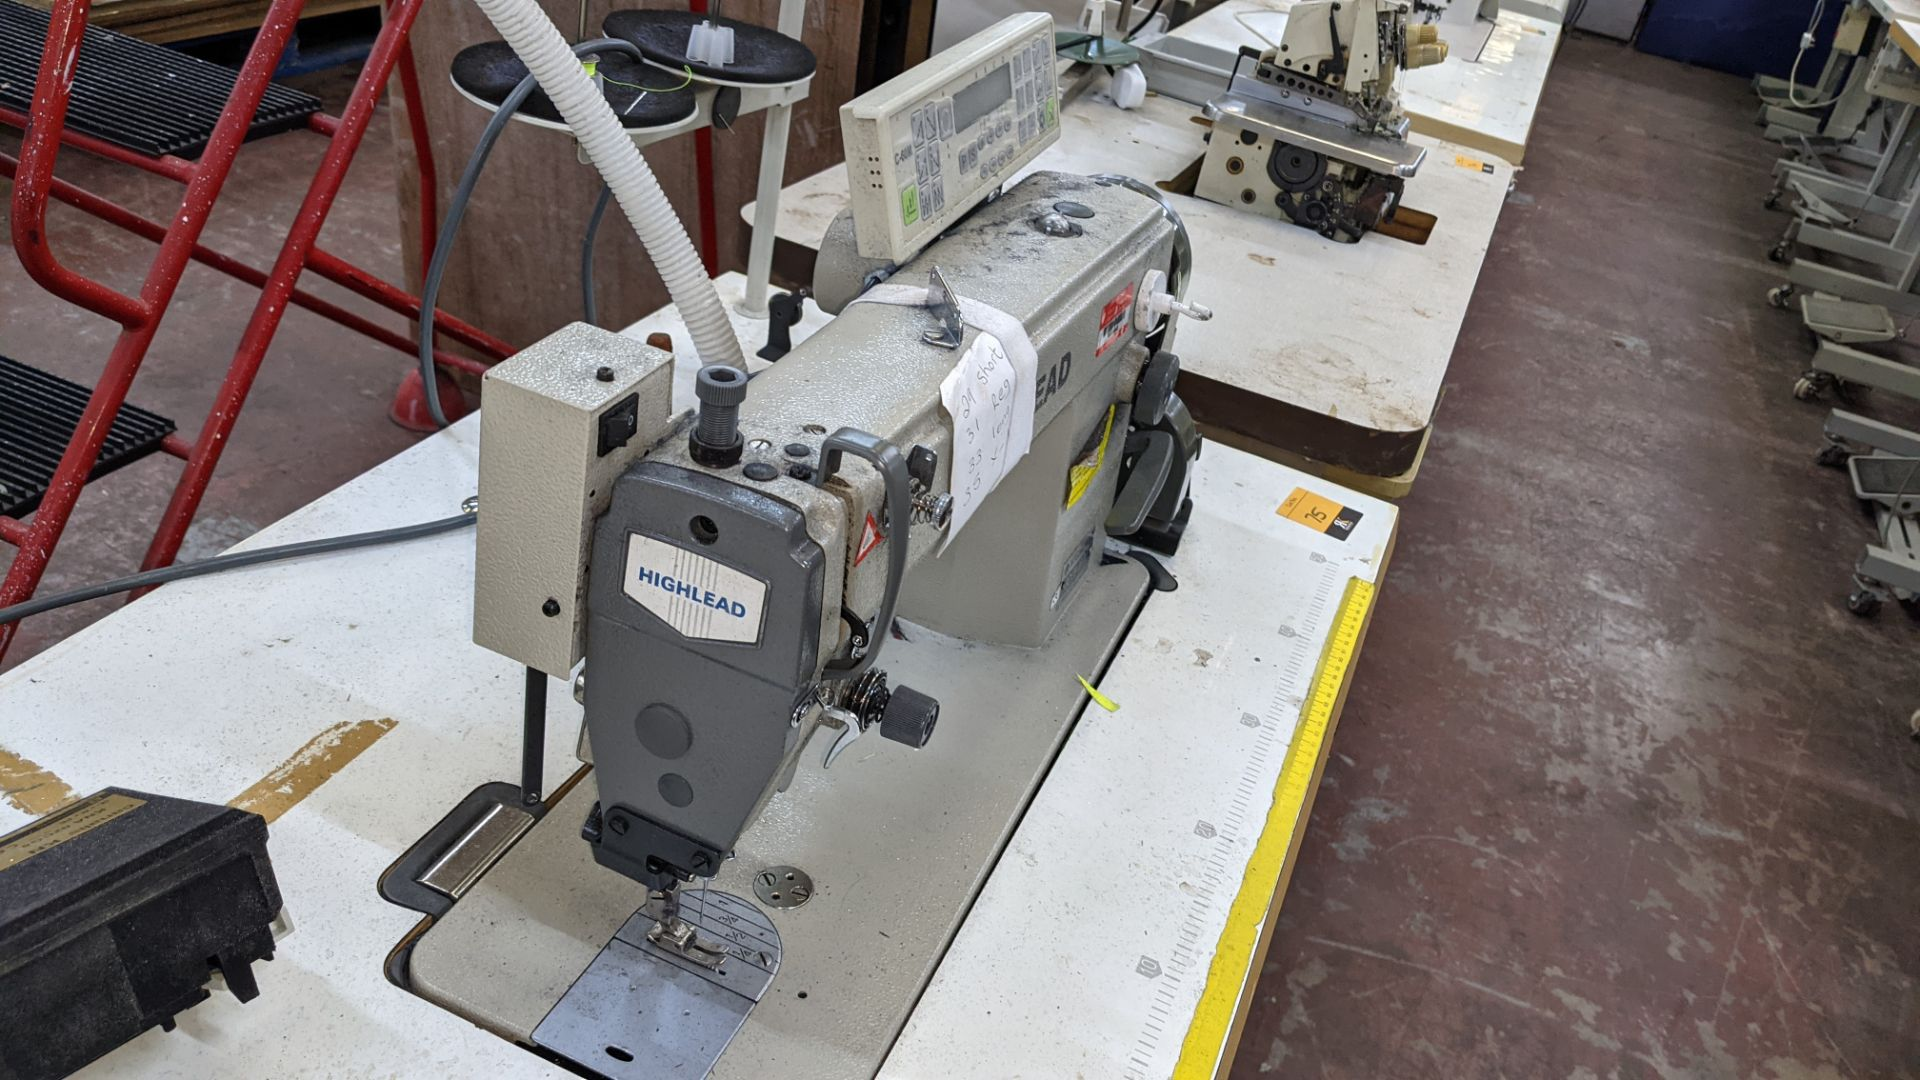 Highlead model GC128-M-D3 sewing machine with model C-60M digital controller - Image 10 of 17